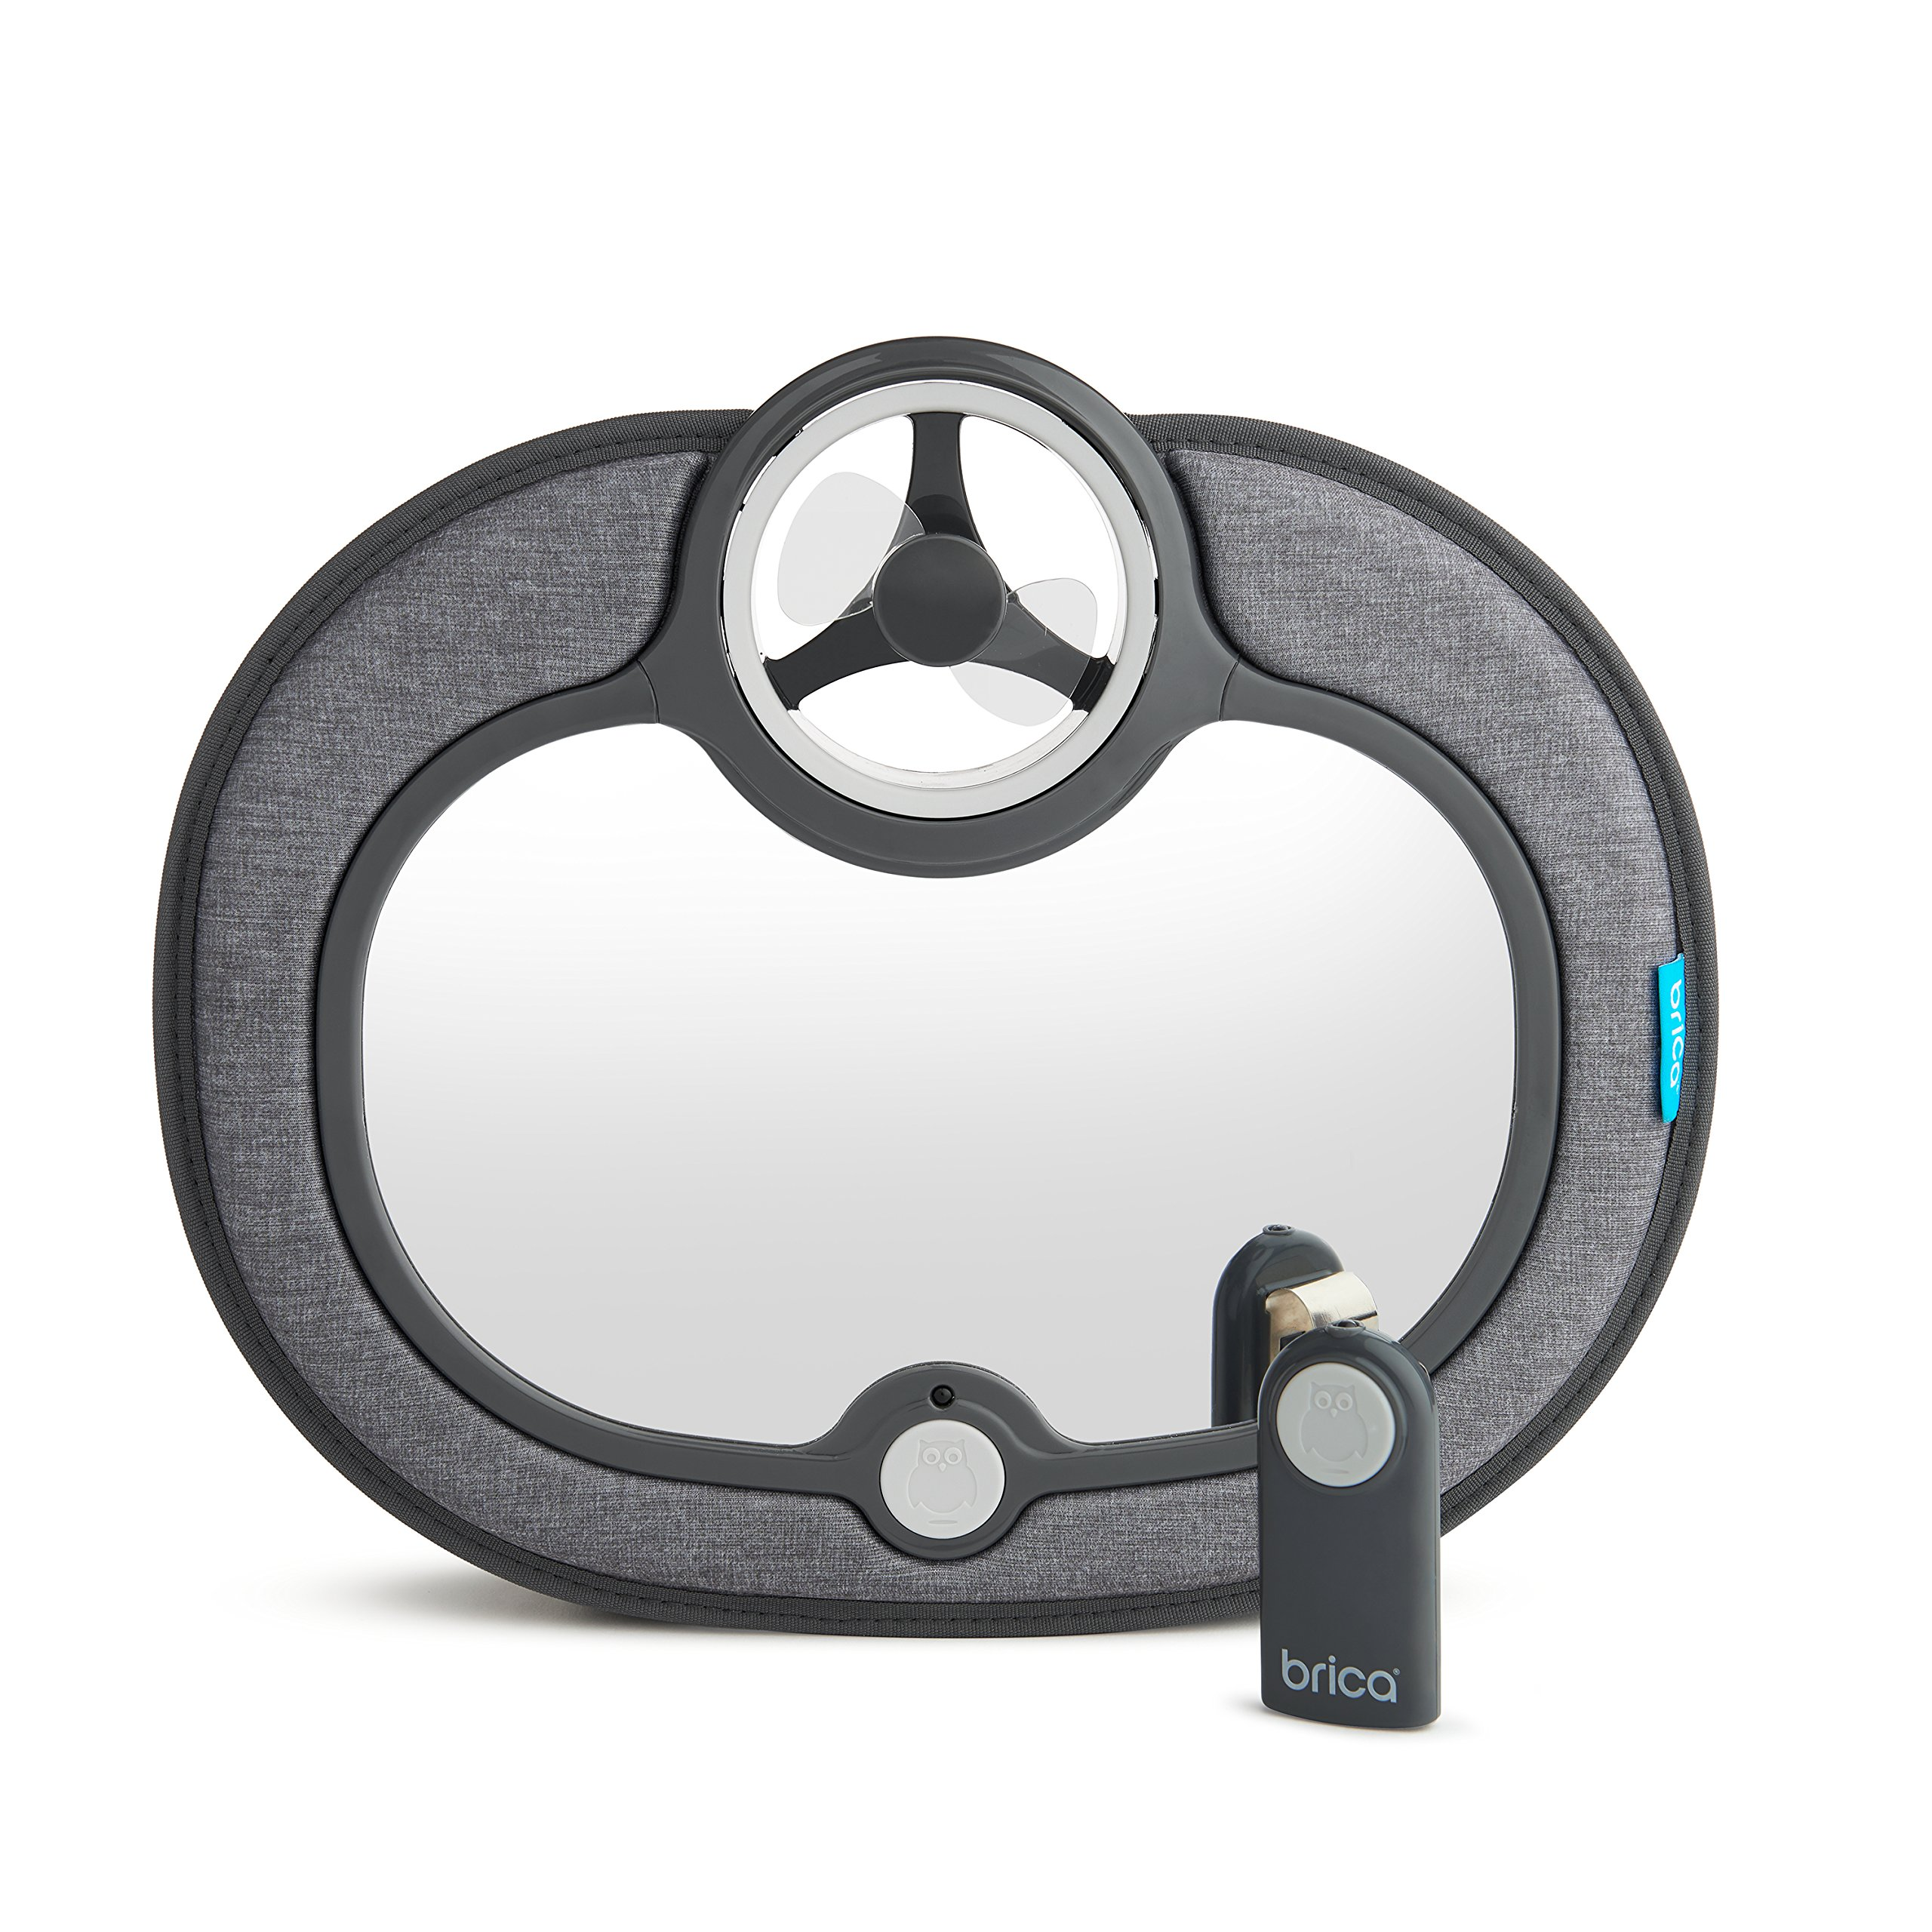 Brica Breeze Baby in-Sight Fan Car Mirror, Grey